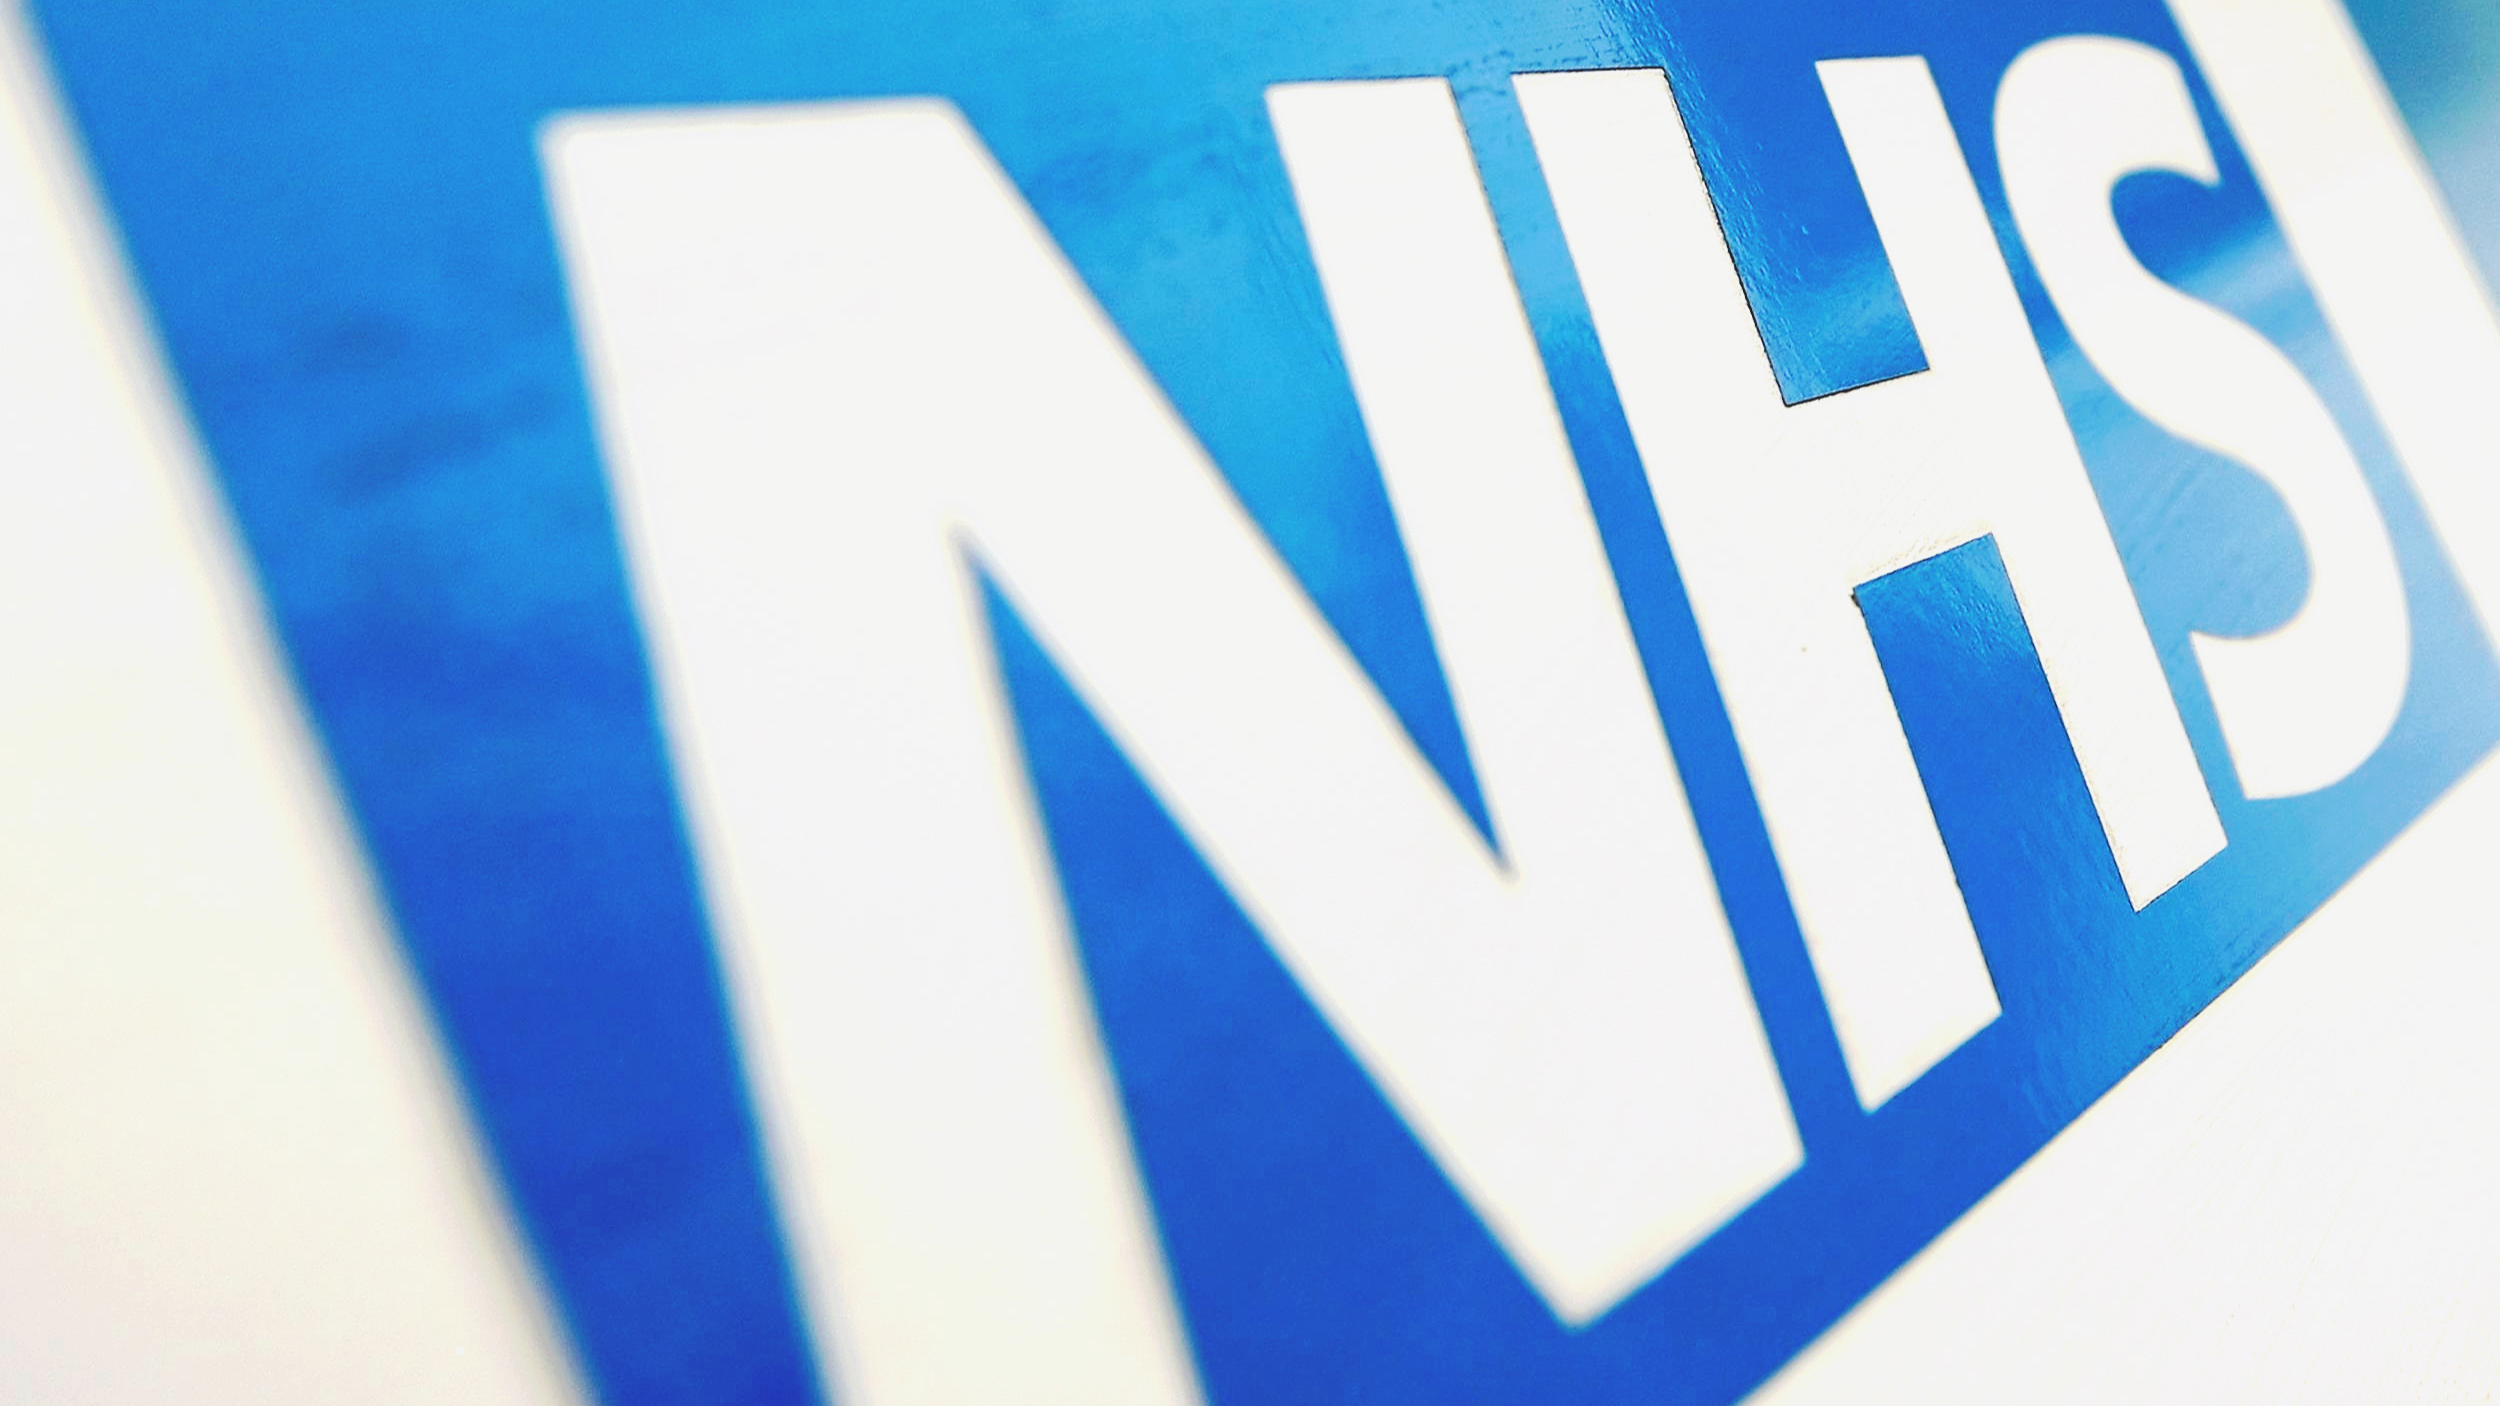 A New Study Shows The Real Extent Of the NHS Crisis